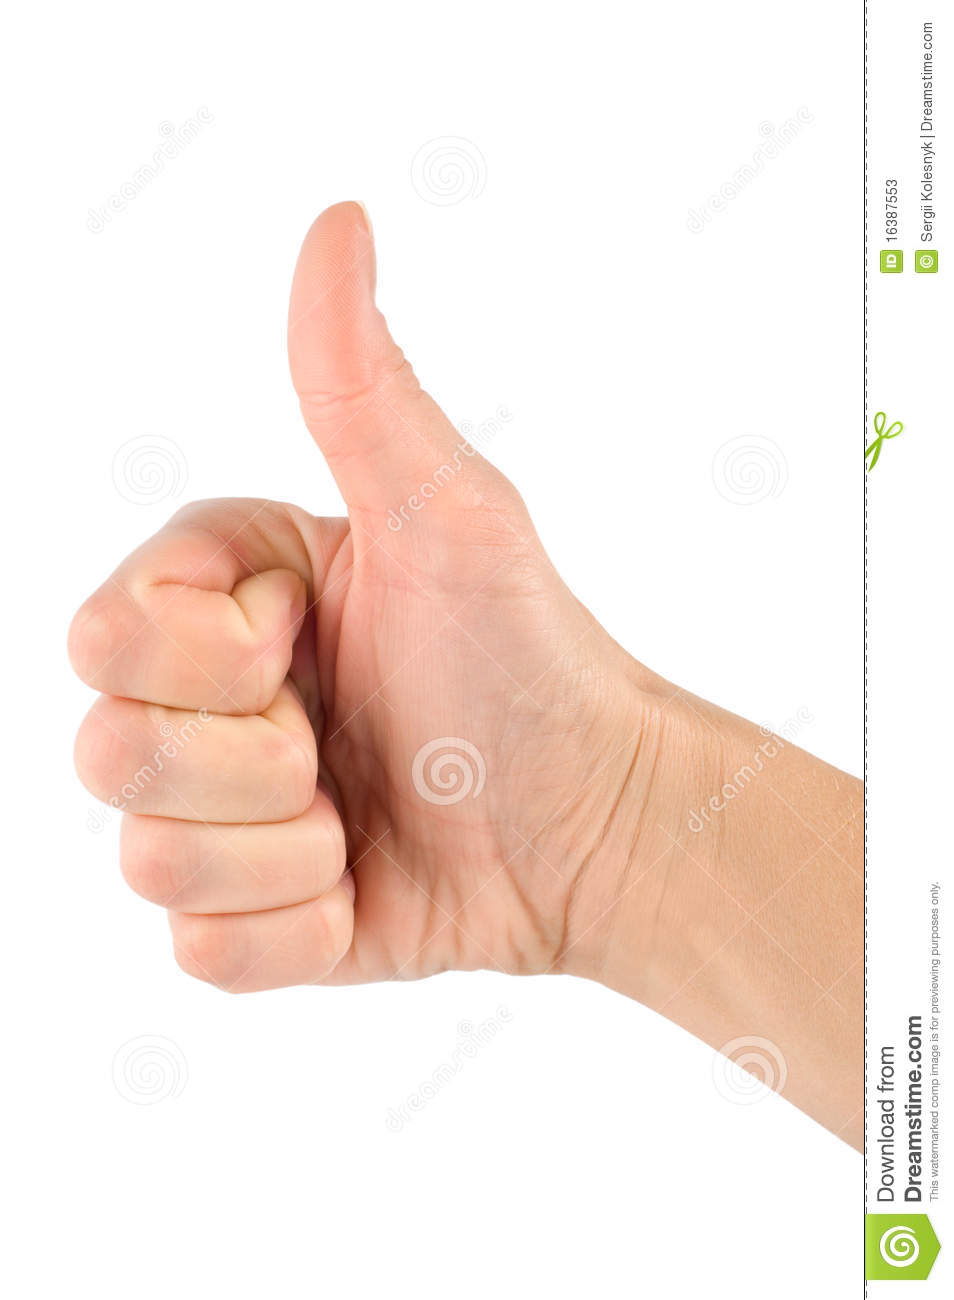 Download Thump up hand sign stock image. Image of finger, abstract - 16387553